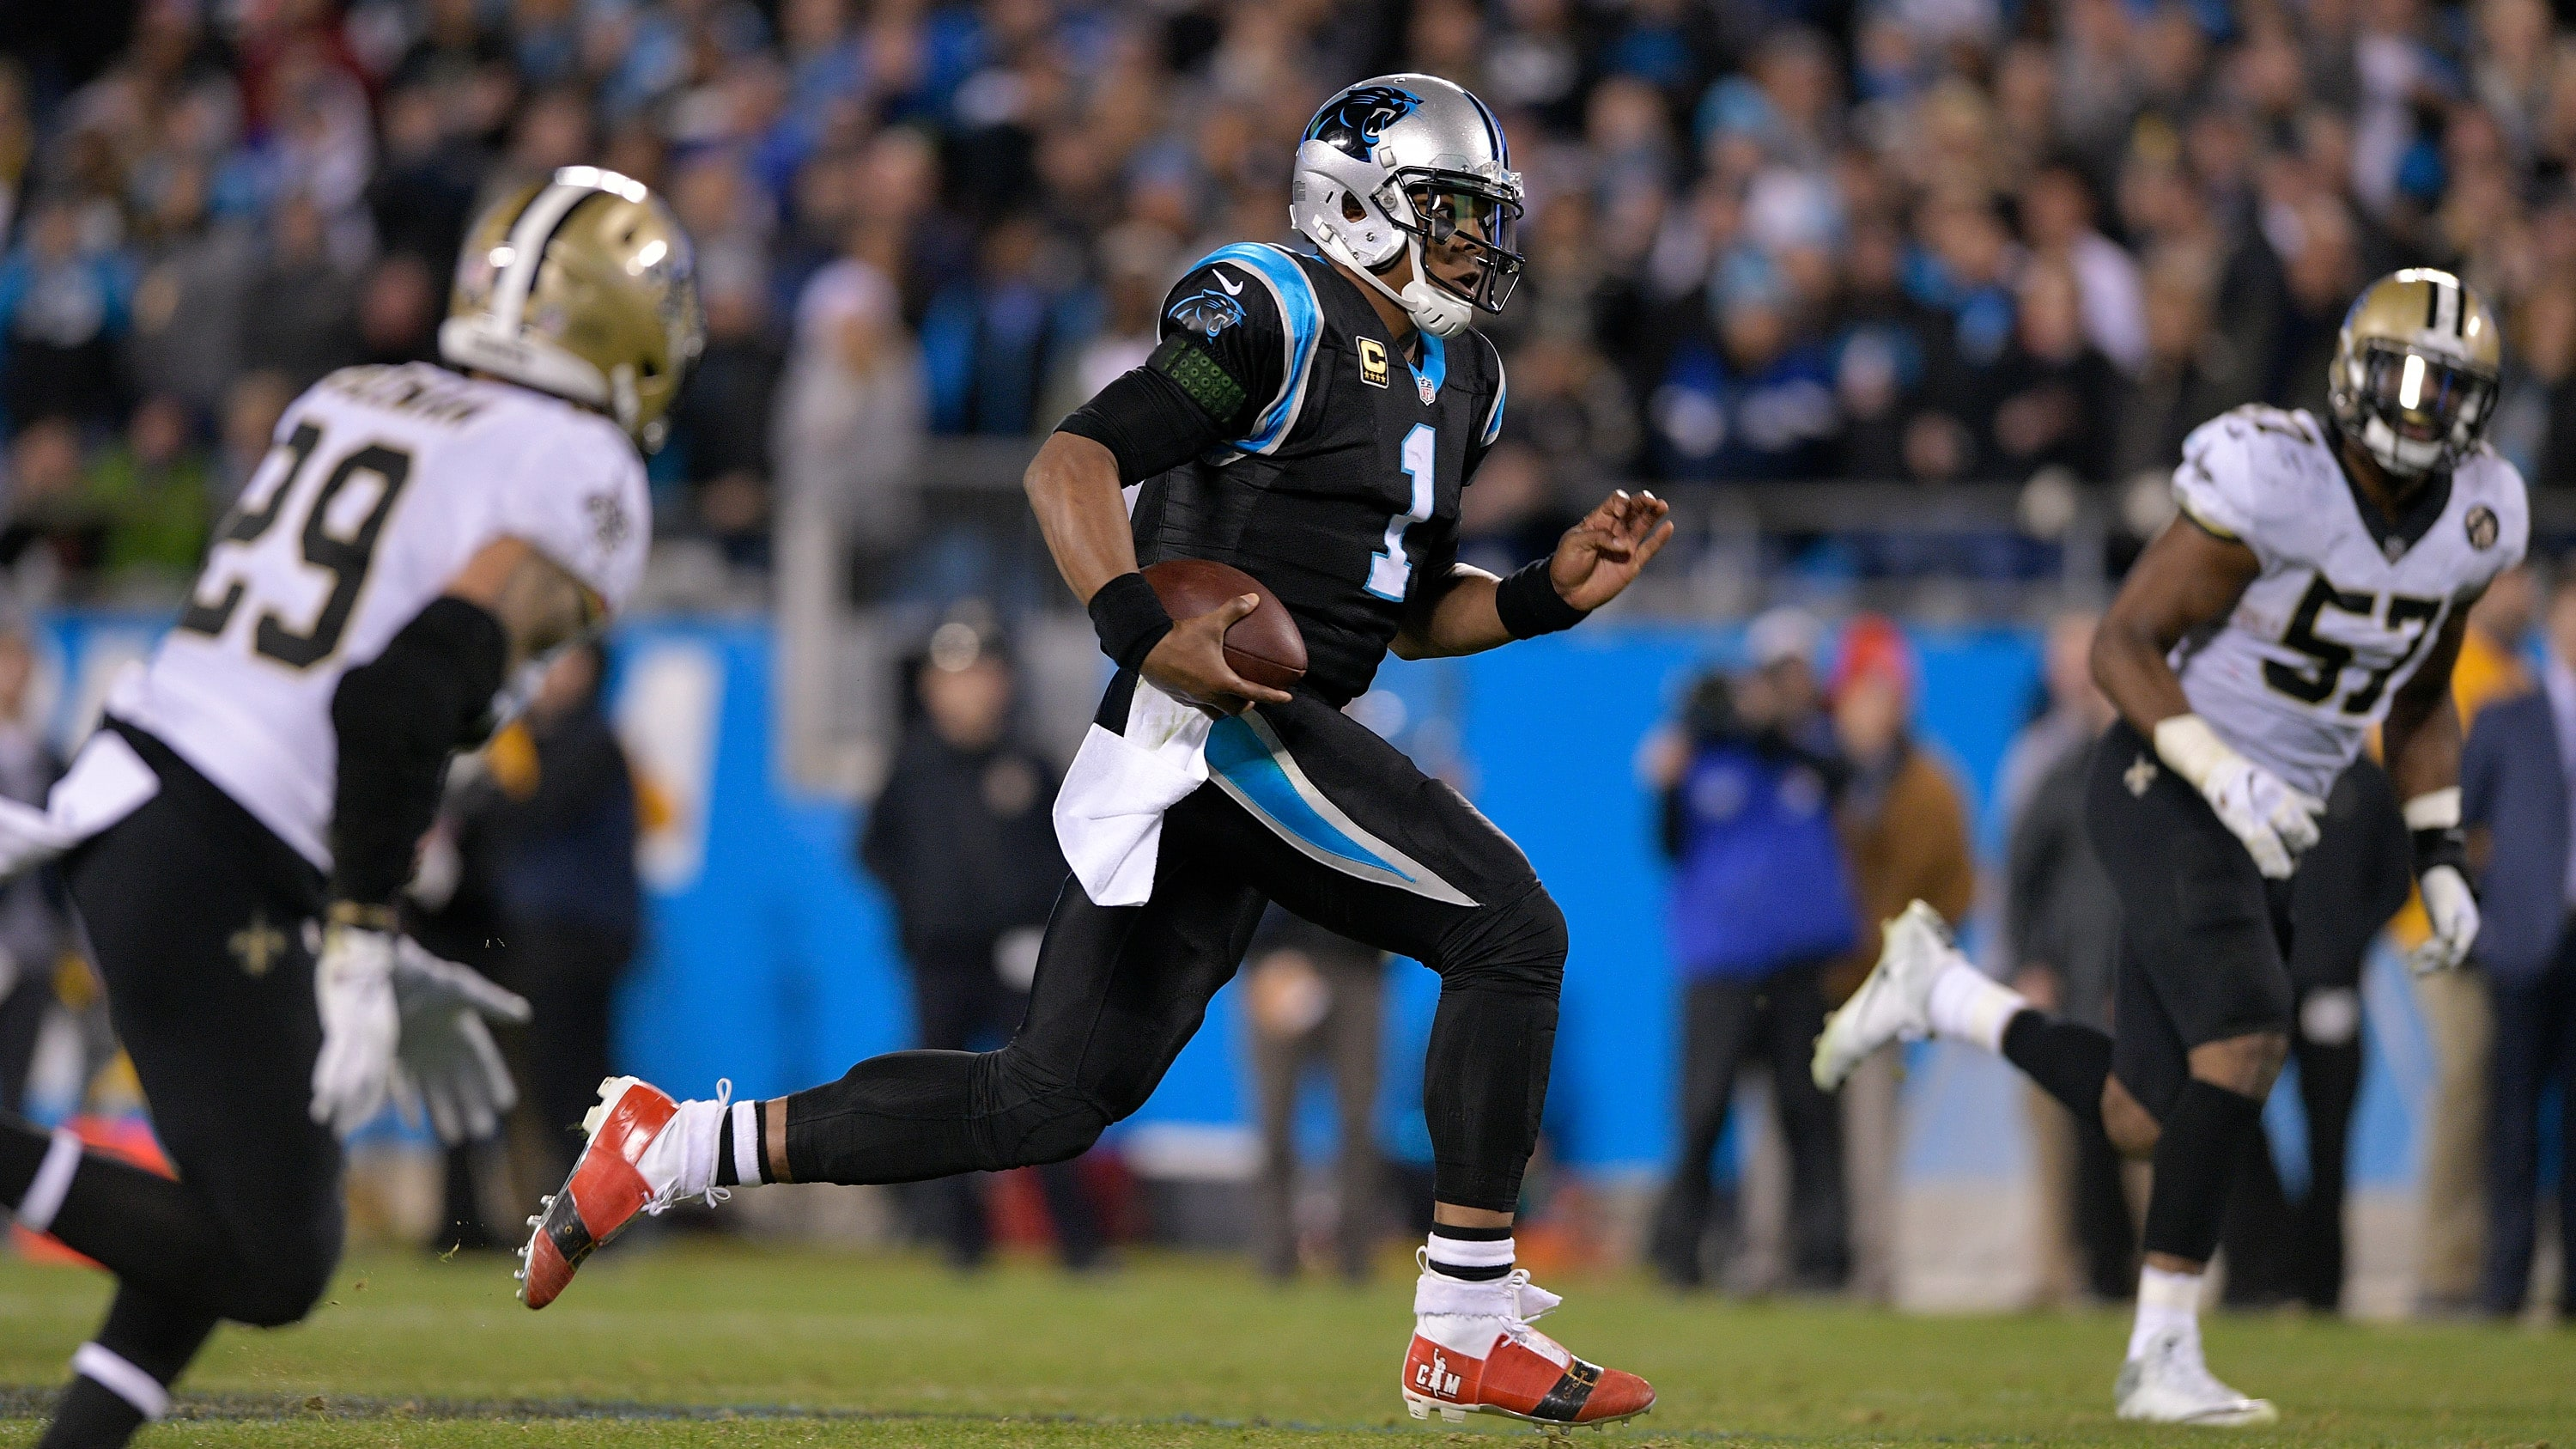 CHARLOTTE, NC - DECEMBER 17:  Cam Newton #1 of the Carolina Panthers runs the ball against the New Orleans Saints in the fourth quarter during their game at Bank of America Stadium on December 17, 2018 in Charlotte, North Carolina.  (Photo by Grant Halverson/Getty Images)